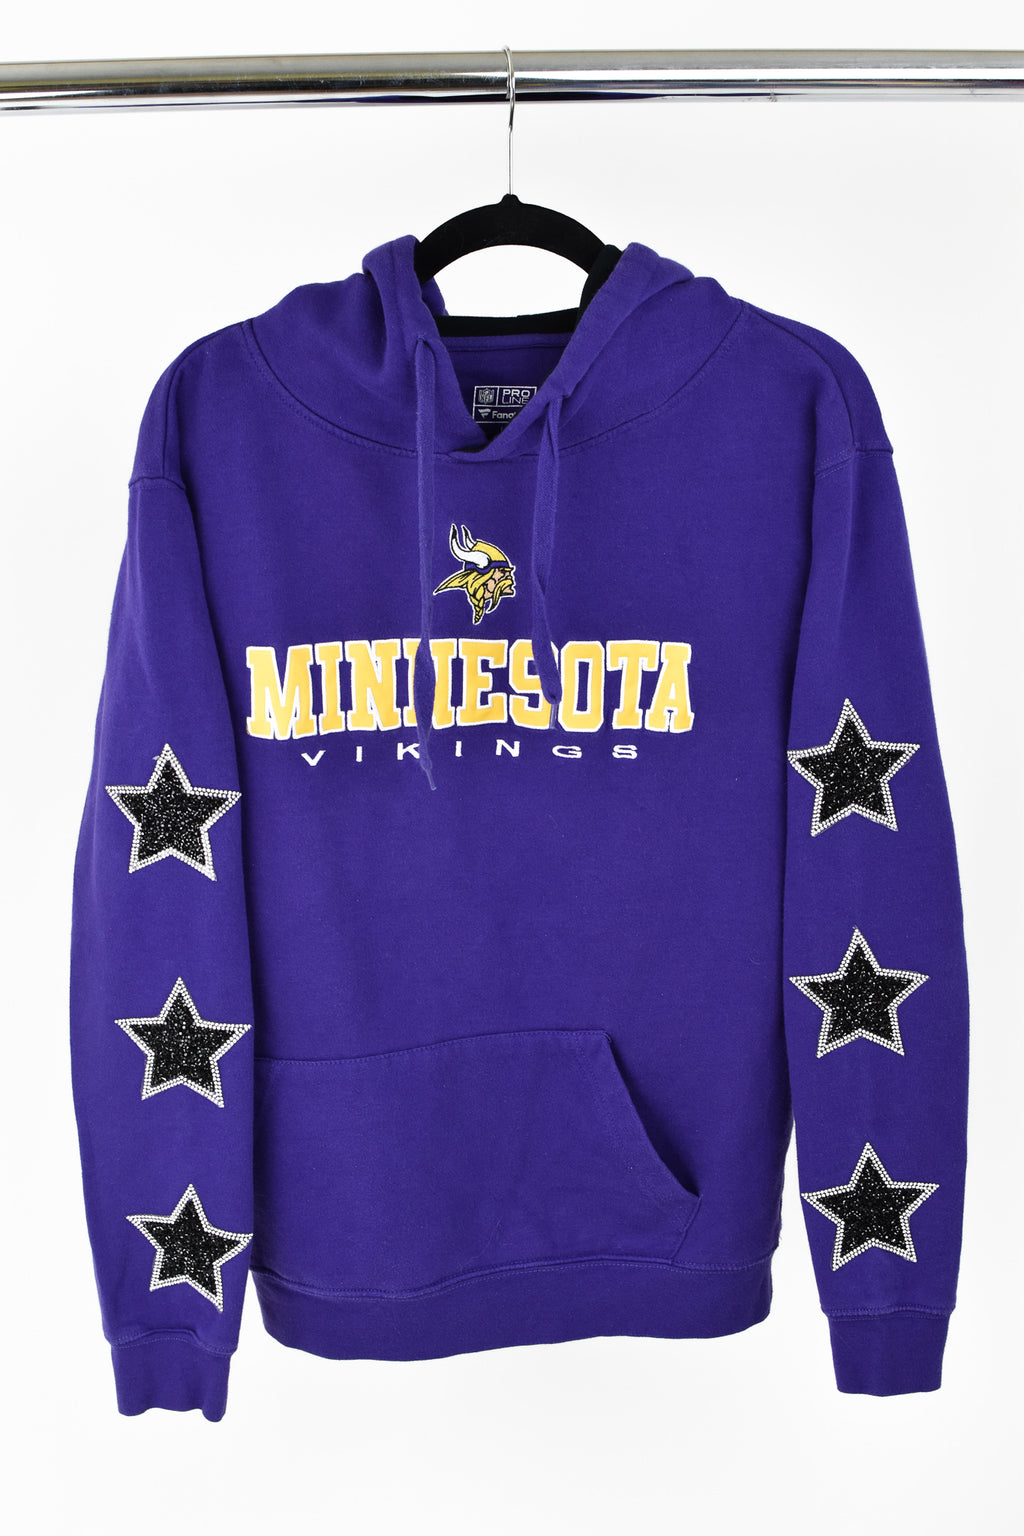 Upcycled Minnesota Vikings Star Rhinestone Sweatshirt